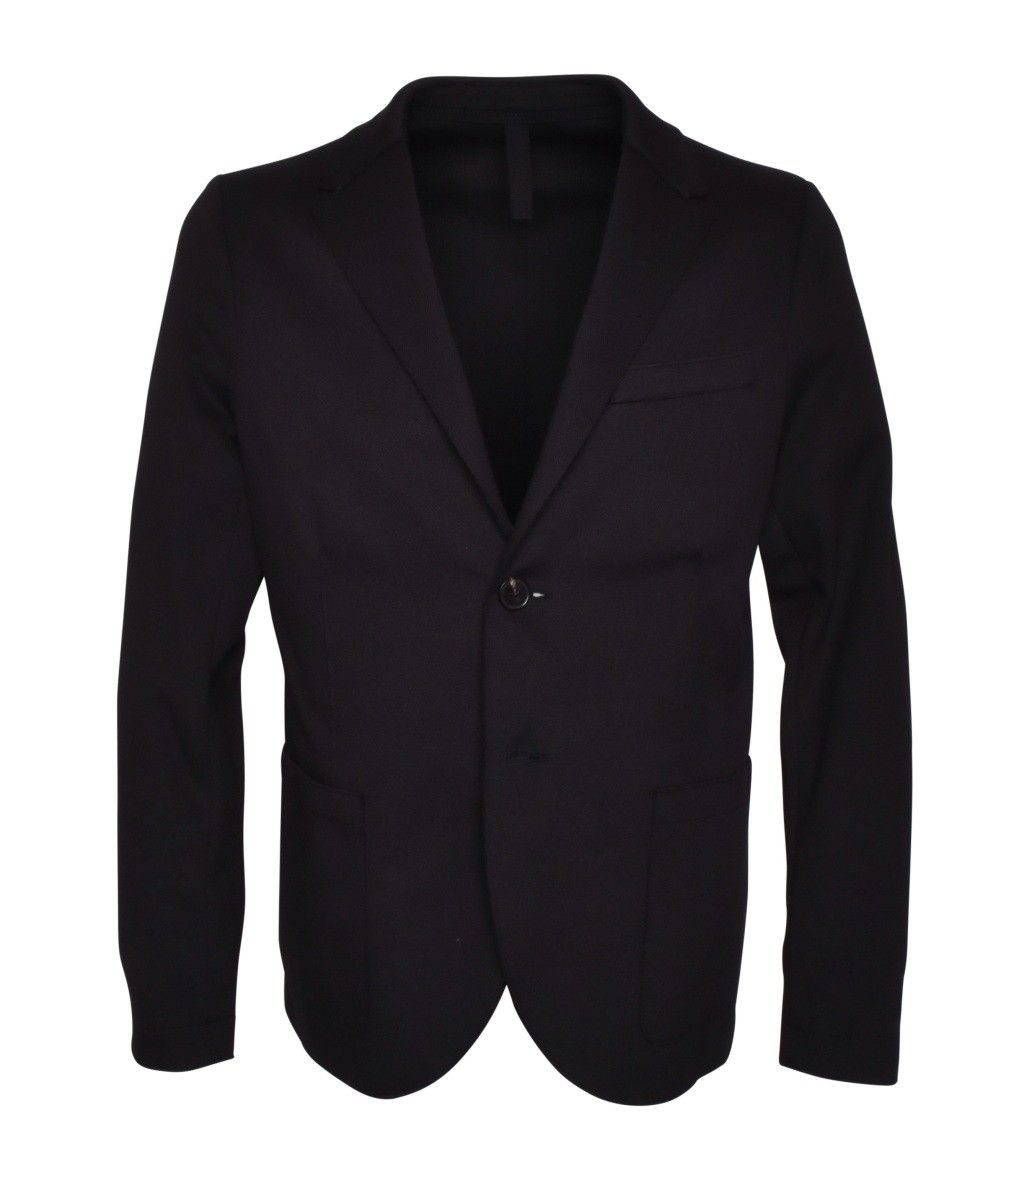 HARRIS WHARF LONDON - Herren Blazer - Men 2B. Blazer - Black